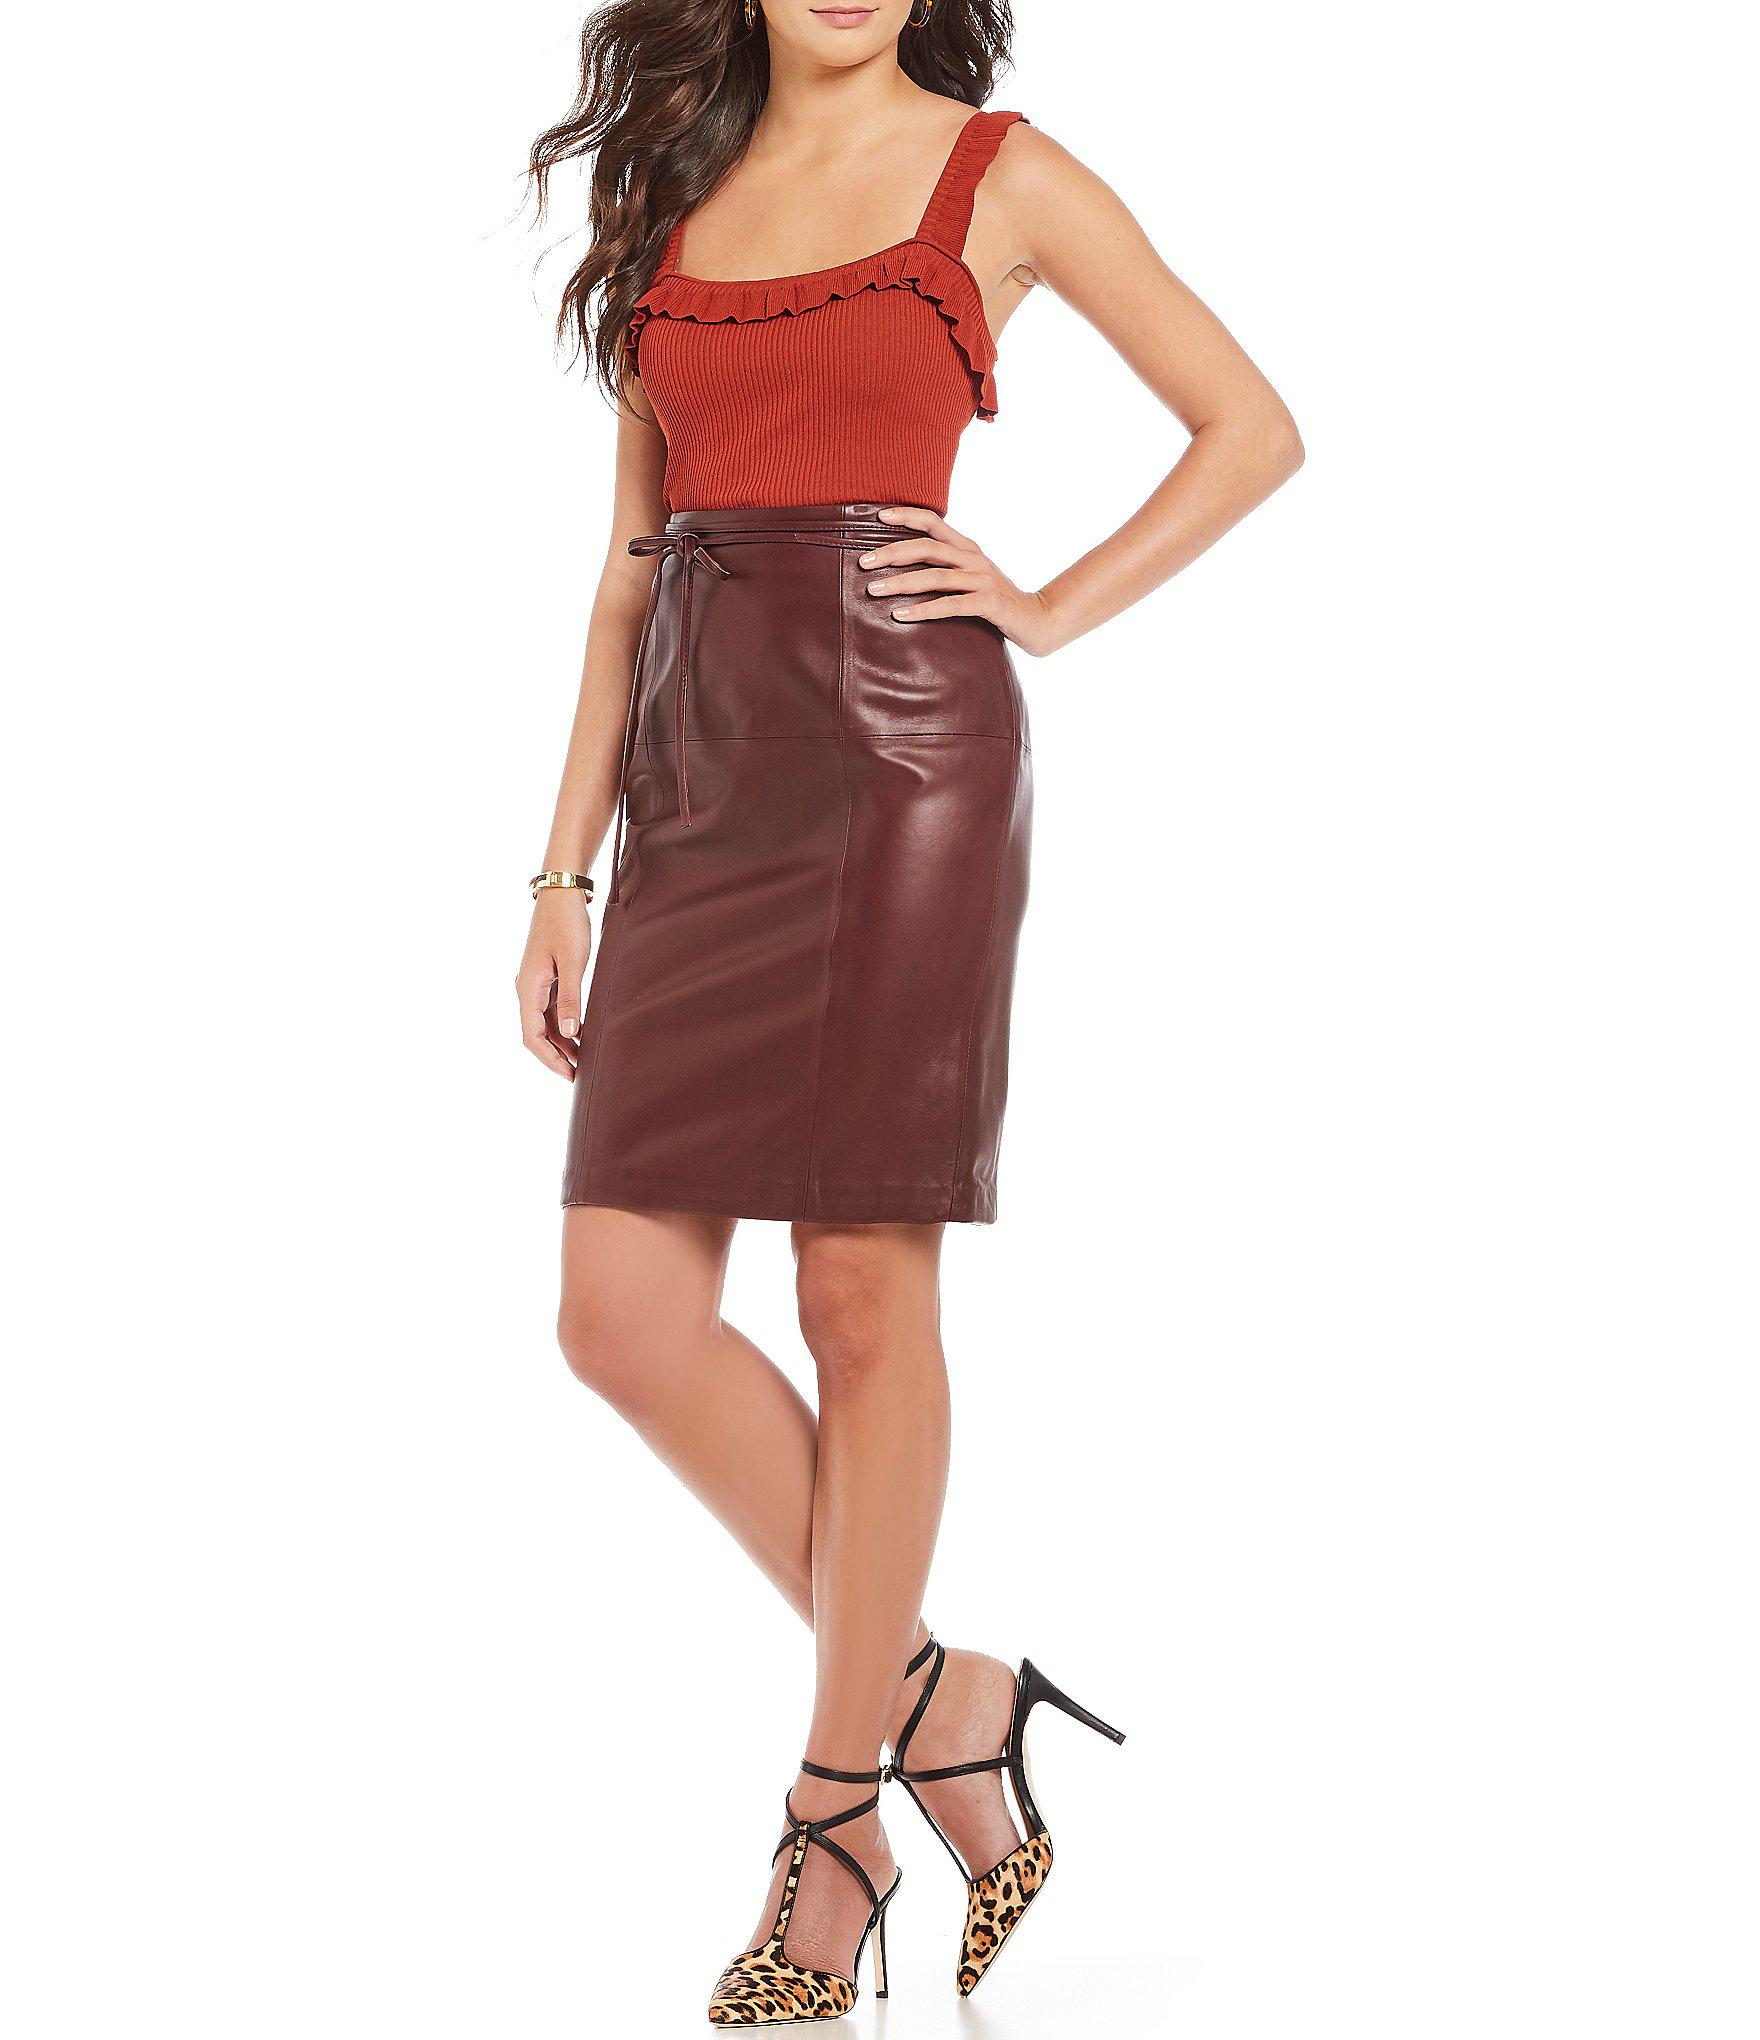 2a869c6eb Antonio Melani Luxury Collection Leather Aria Skirt in Red - Lyst